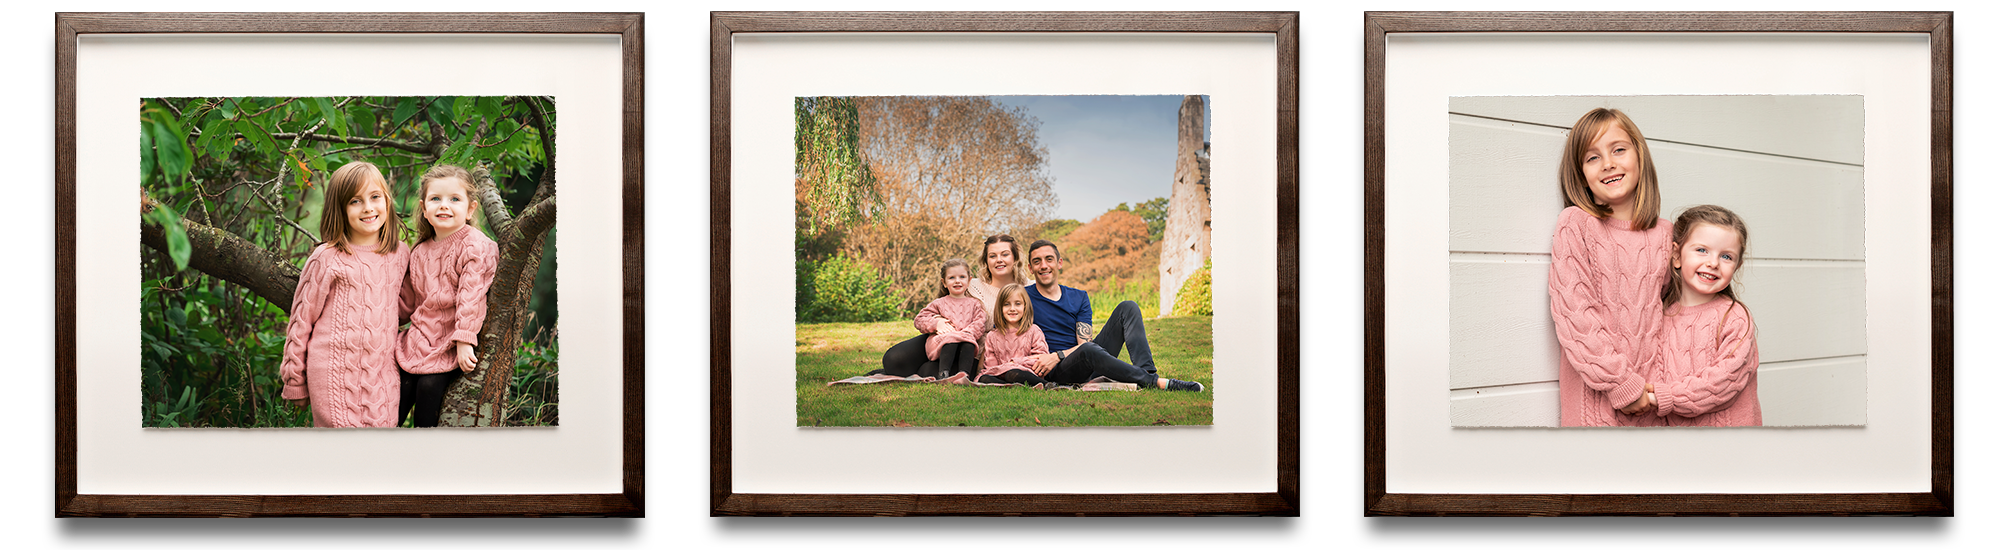 framed family portraits Life in Focus Portraits family photographer Rhu Helensburgh